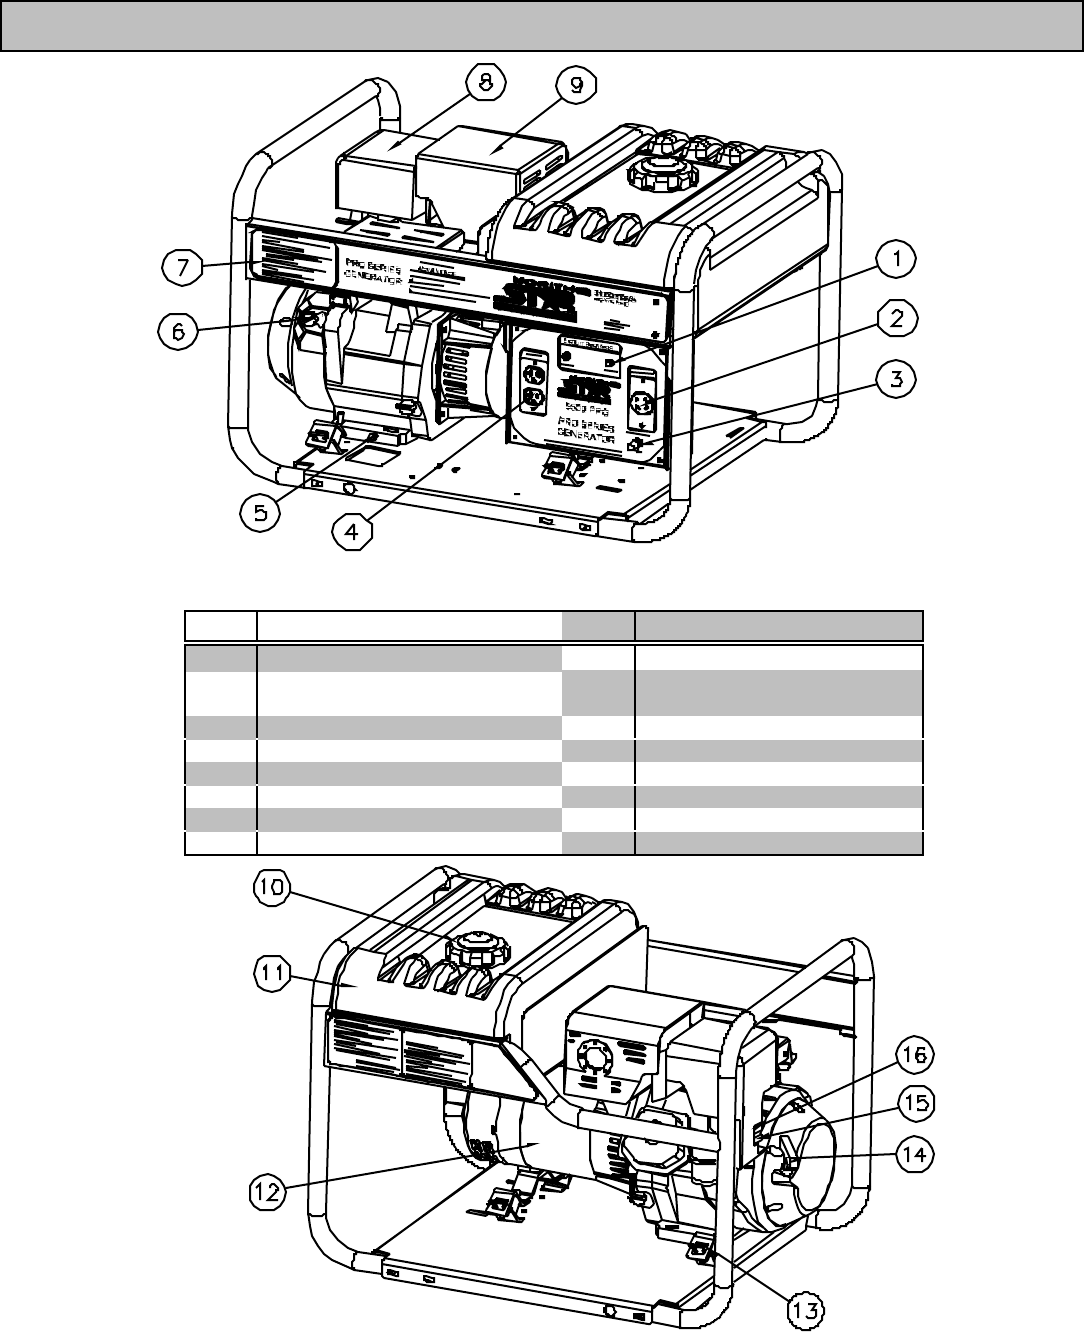 Page 4 of North Star Portable Generator 5500 User Guide